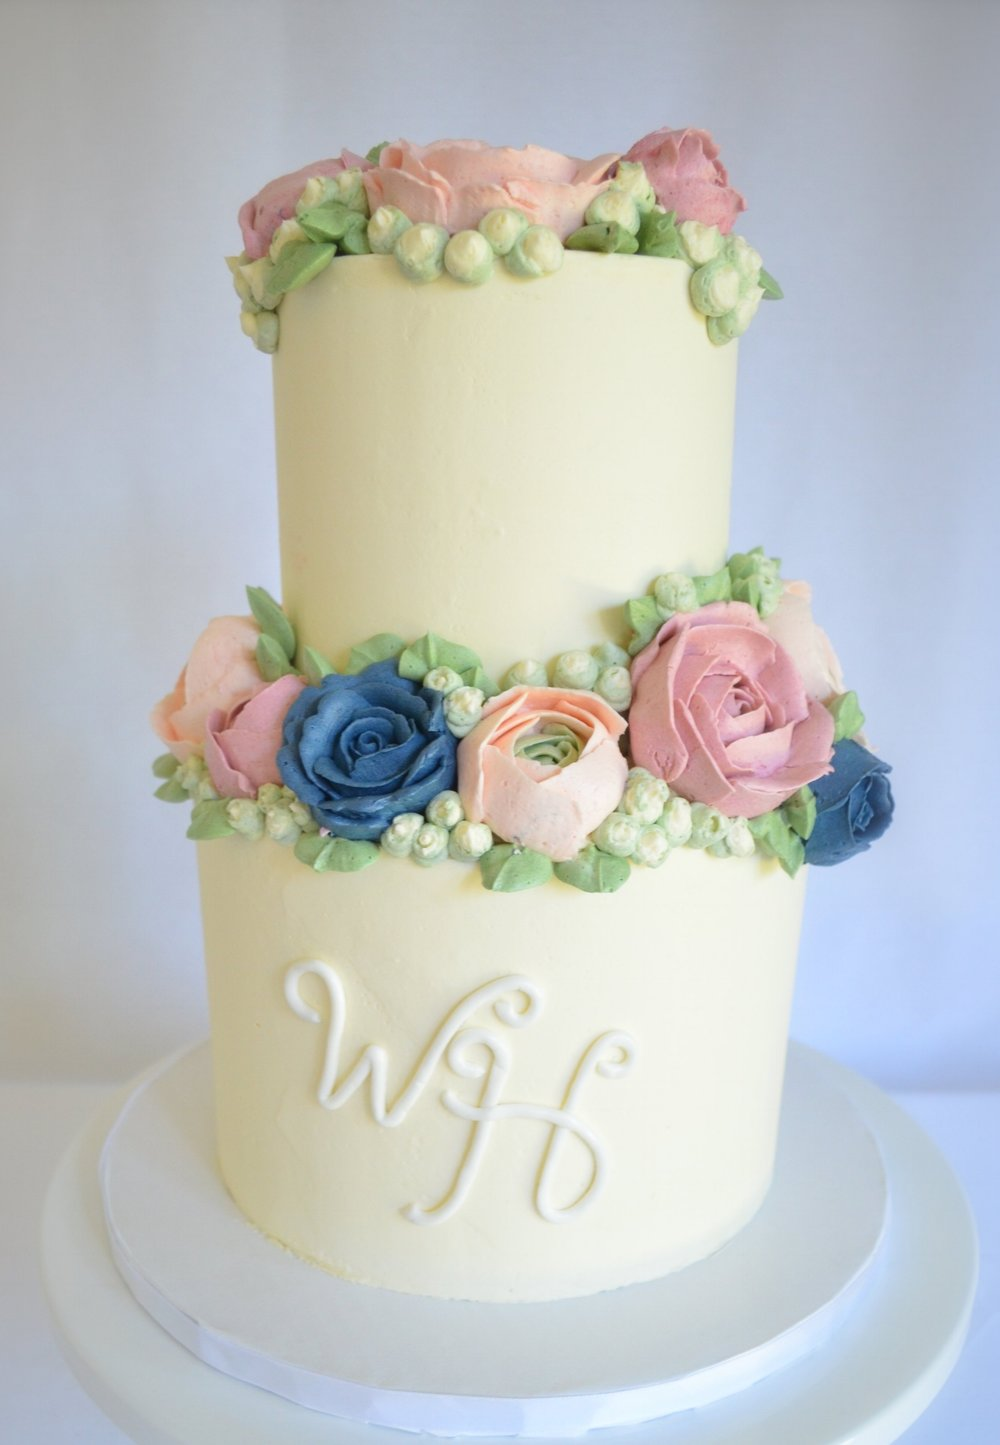 Beautiful buttercream, add a tinted white chocolate drip for extra yum!